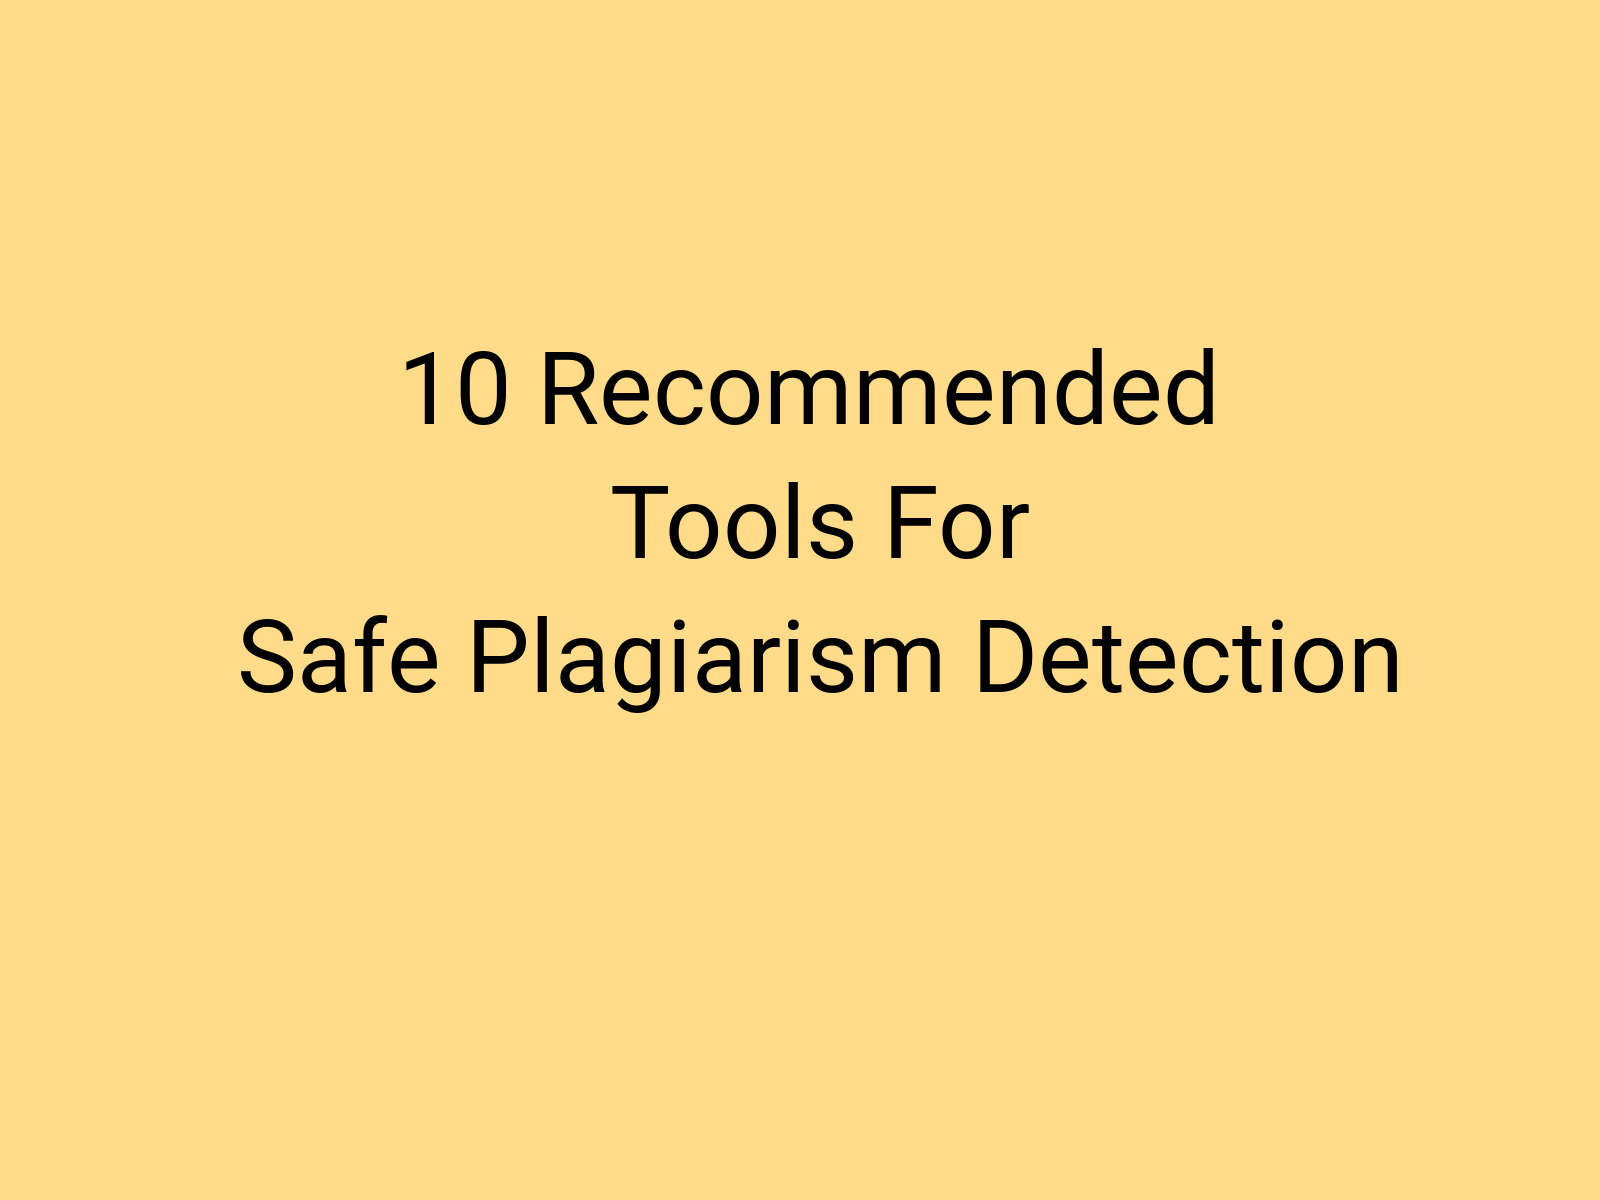 019 Free Plagiarism Checker For Researchs Online Detection Software Awesome Research Papers Students And Teachers Toolkit.thepensters.com Uk Full